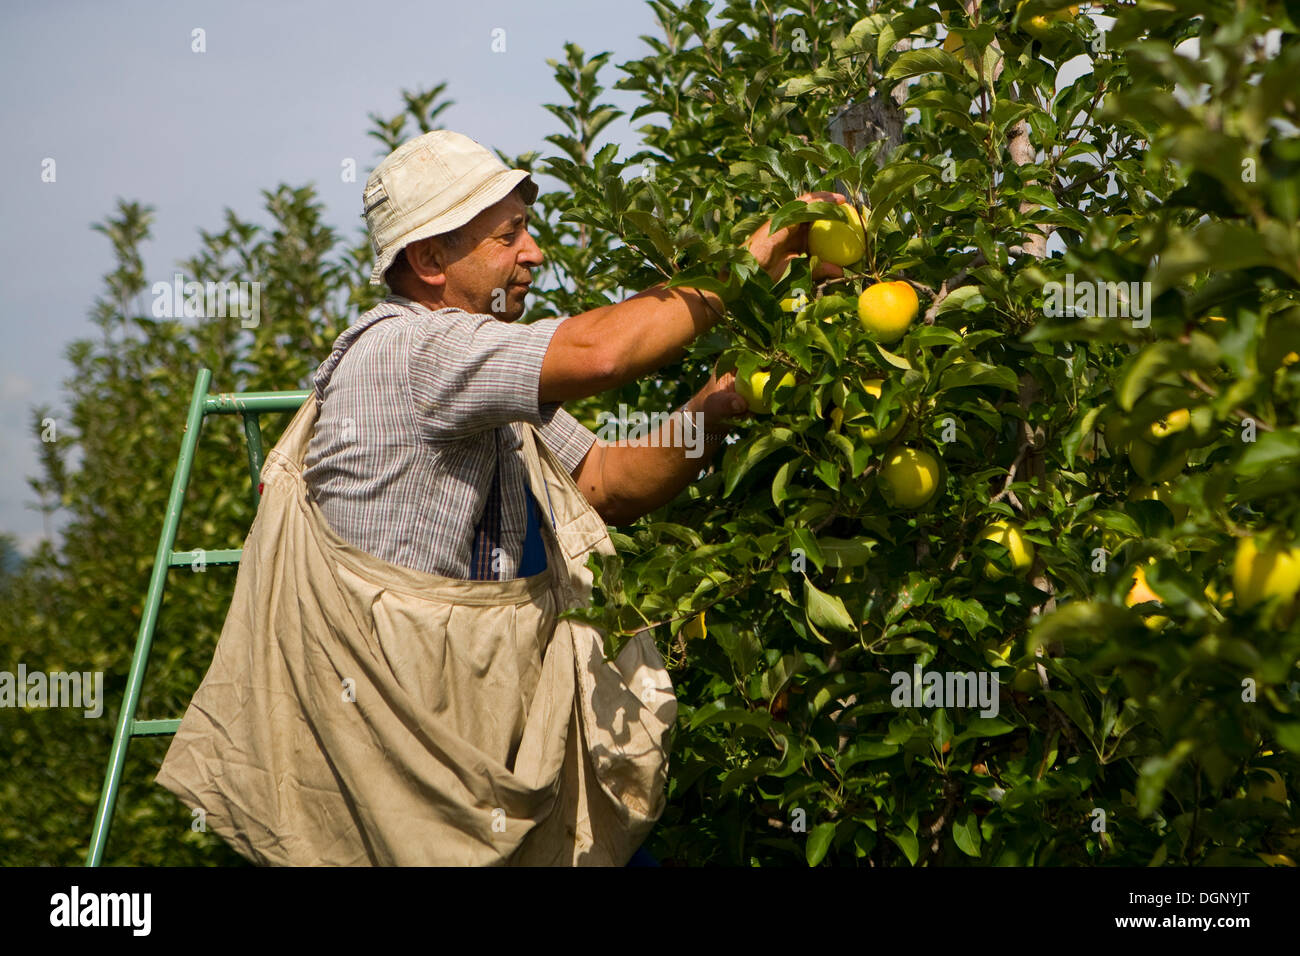 Man Picking Apples Province Of Bolzano Bozen Italy Europe